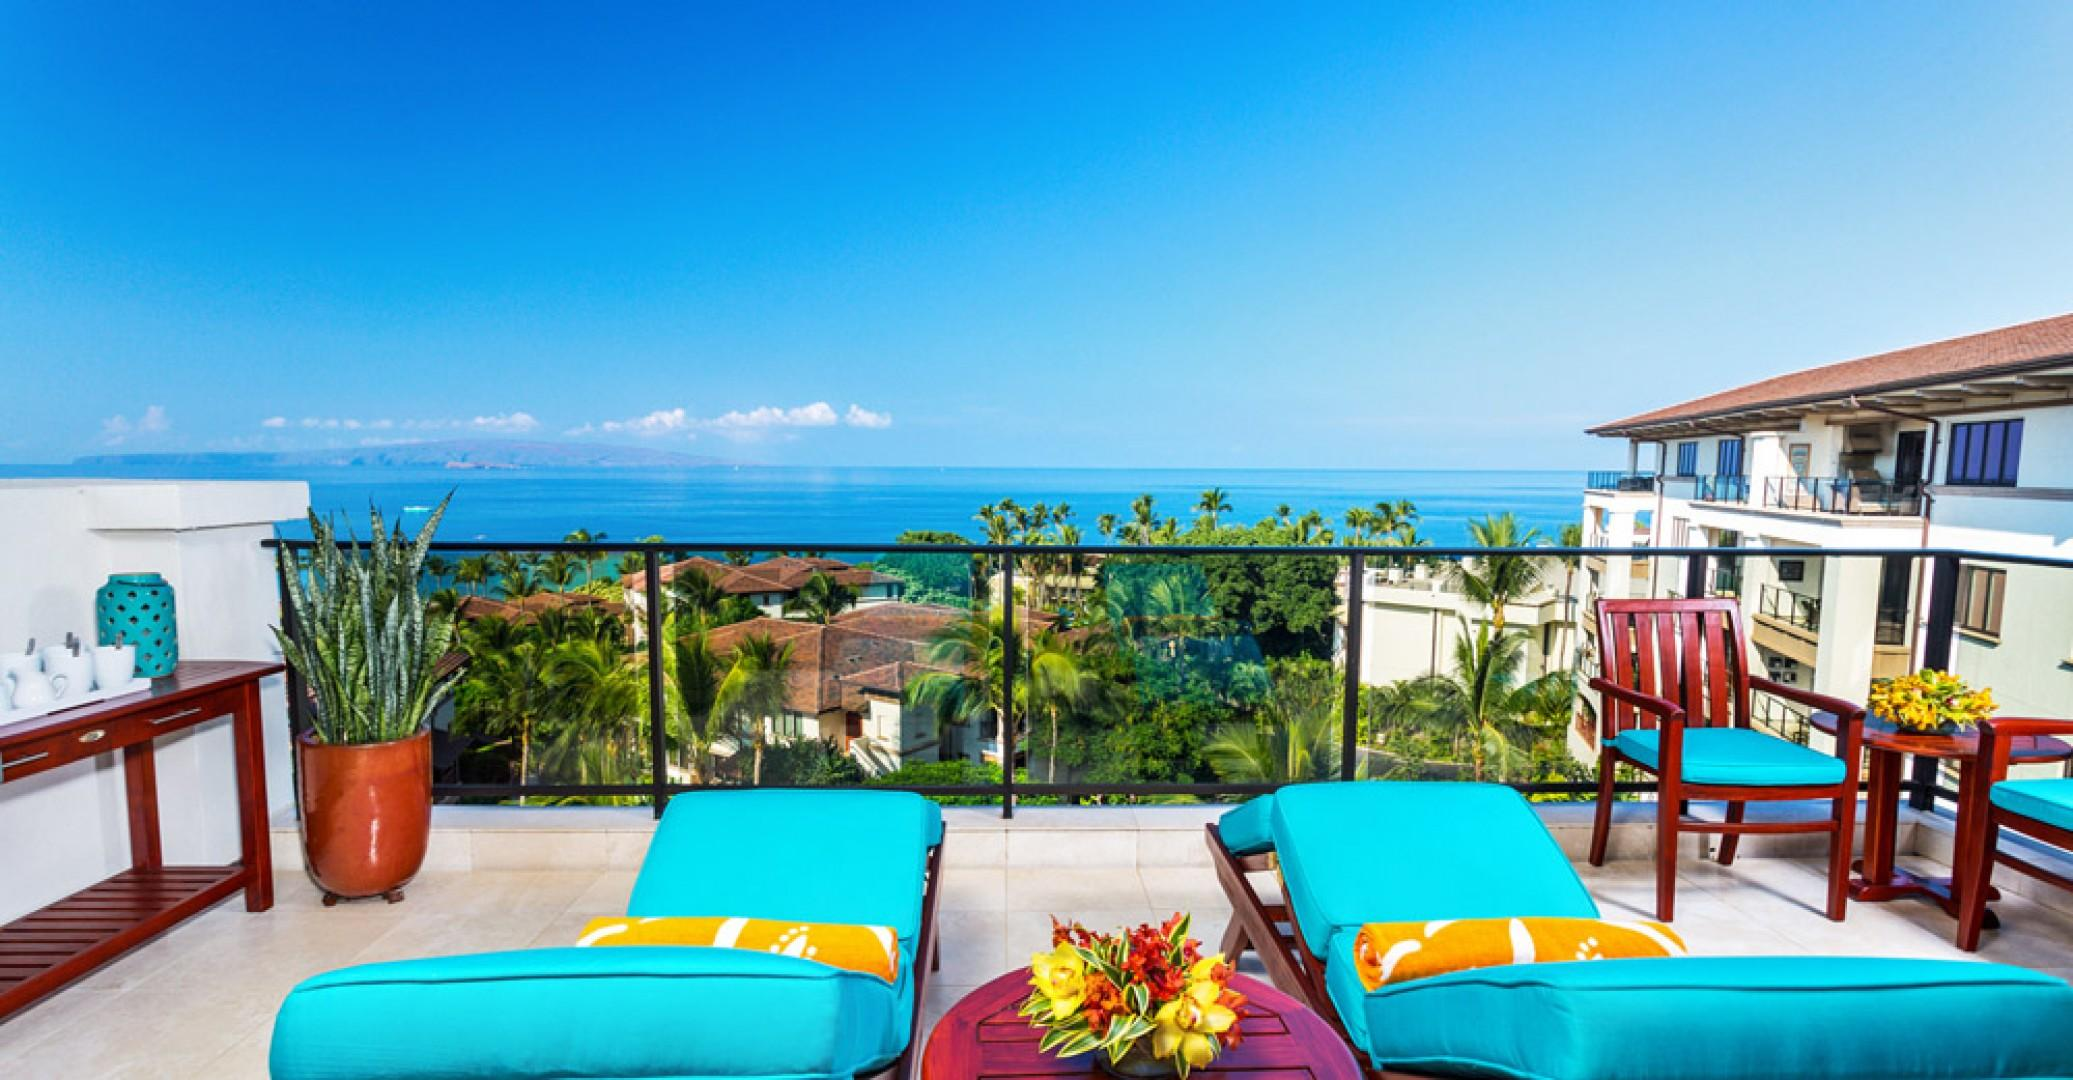 Stunning Panoramic Ocean Views From K507 Wailea Seashore Suite Located on the TOP (5th Floor) of Wailea Beach Villas